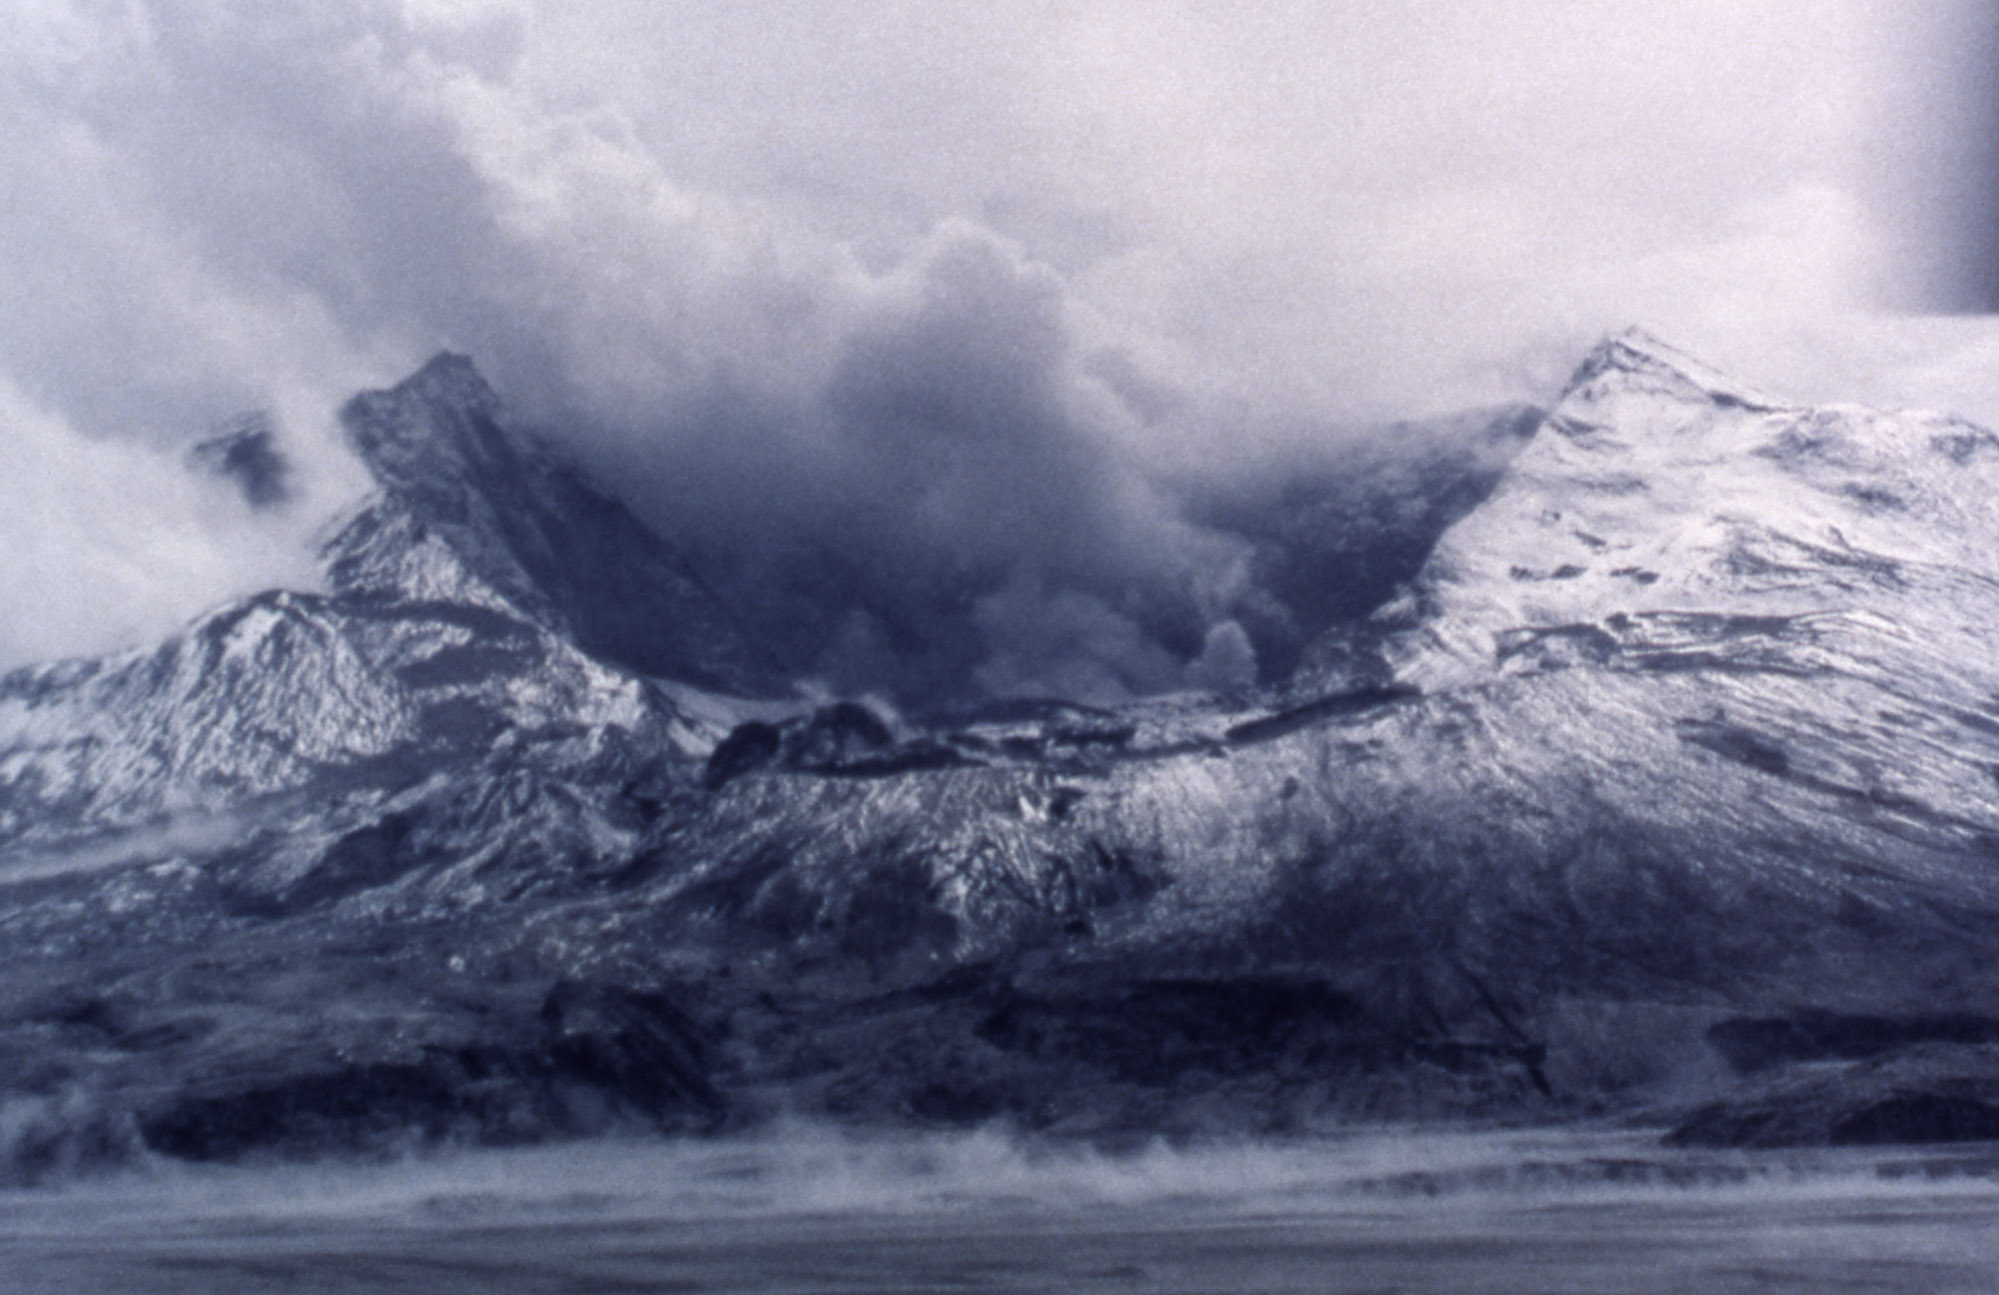 Earliest view of the north side of gutted mountain with enormous crater;